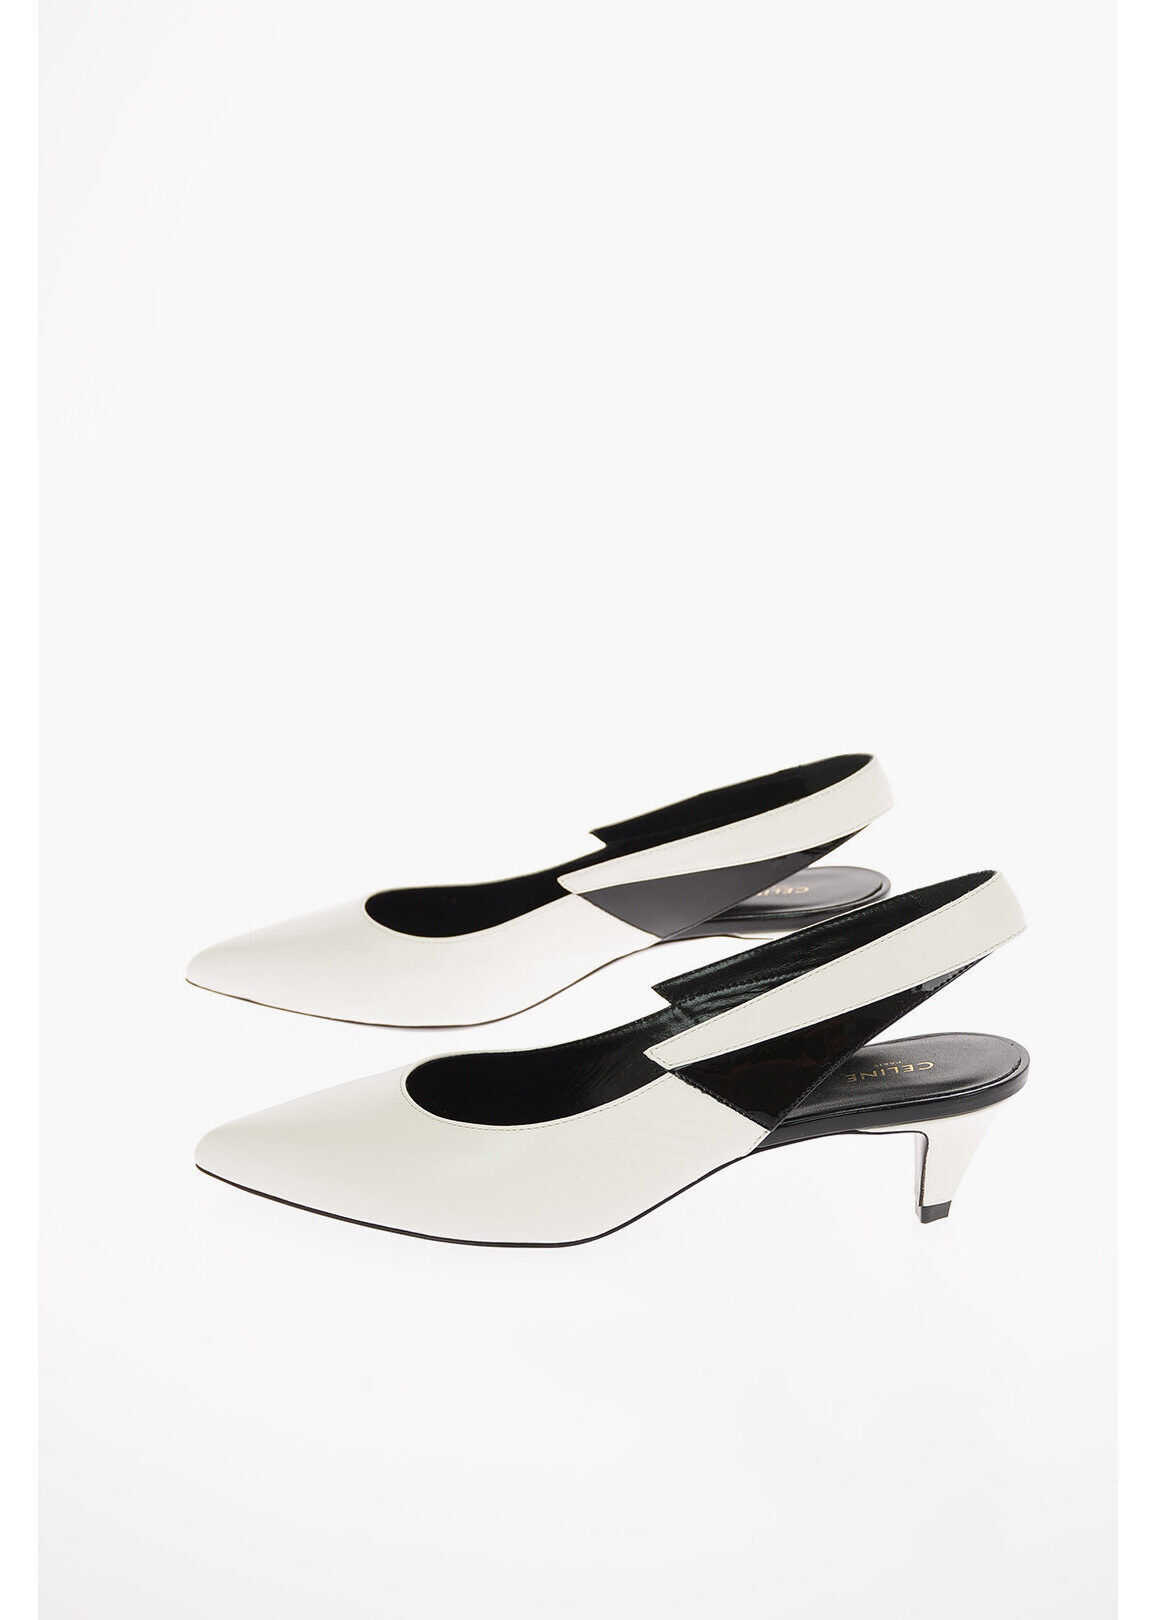 Céline Soft Leather Slingback Pumps with Patent Leather Detail and WHITE imagine b-mall.ro